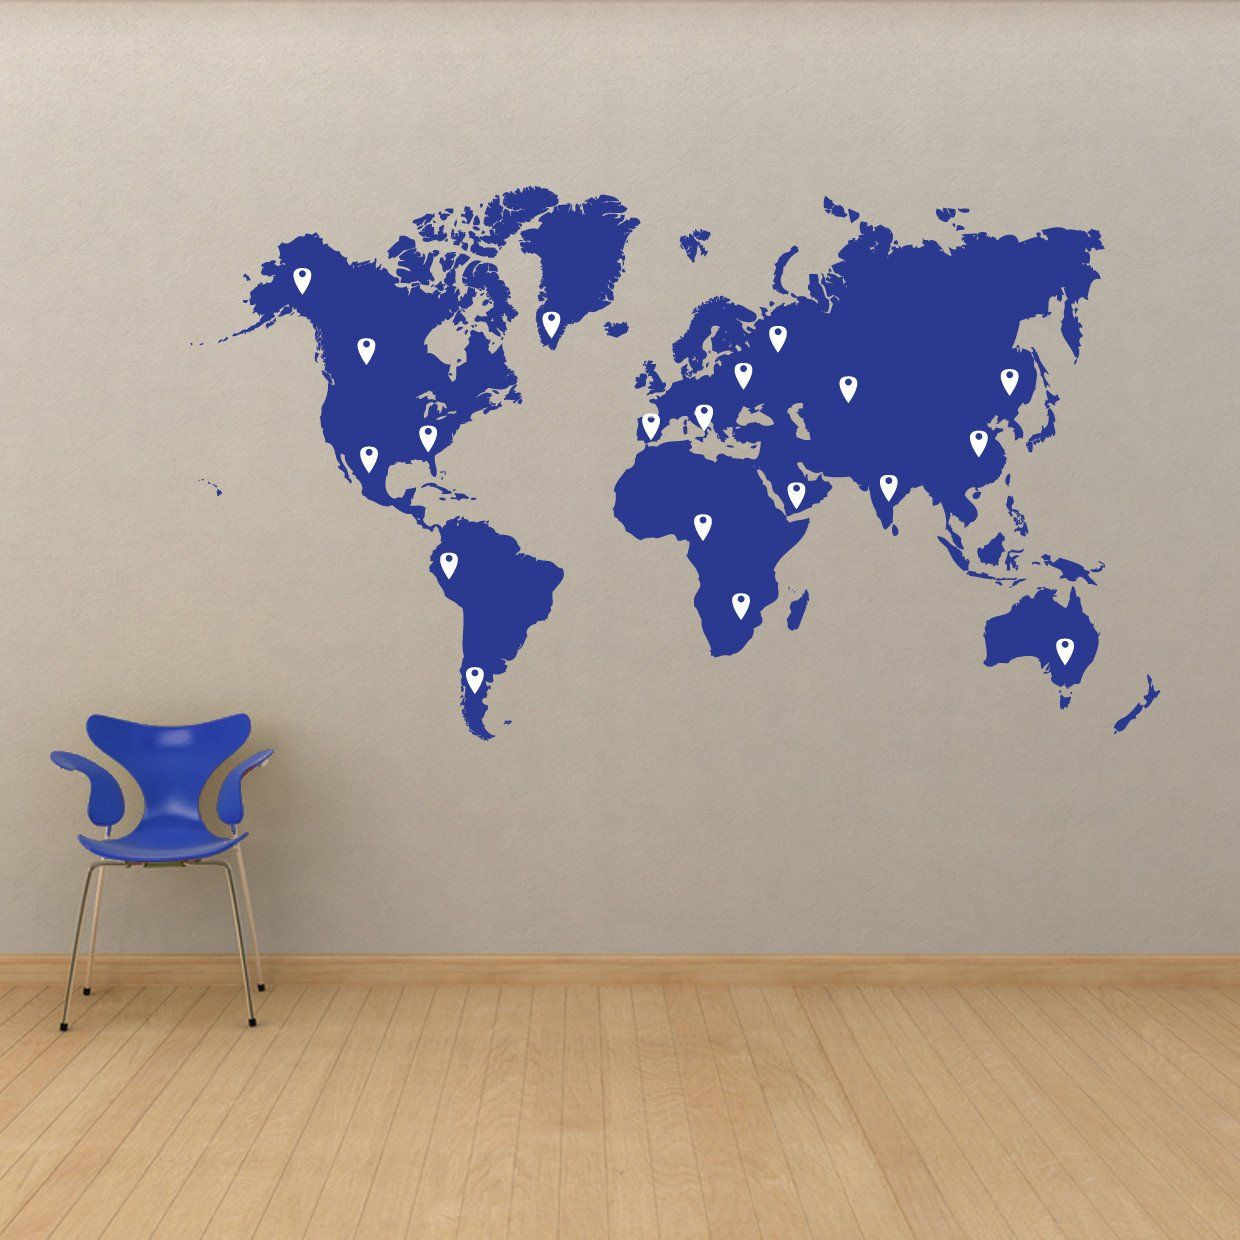 World Map Pin Drops Decal 873 World Map With Pins